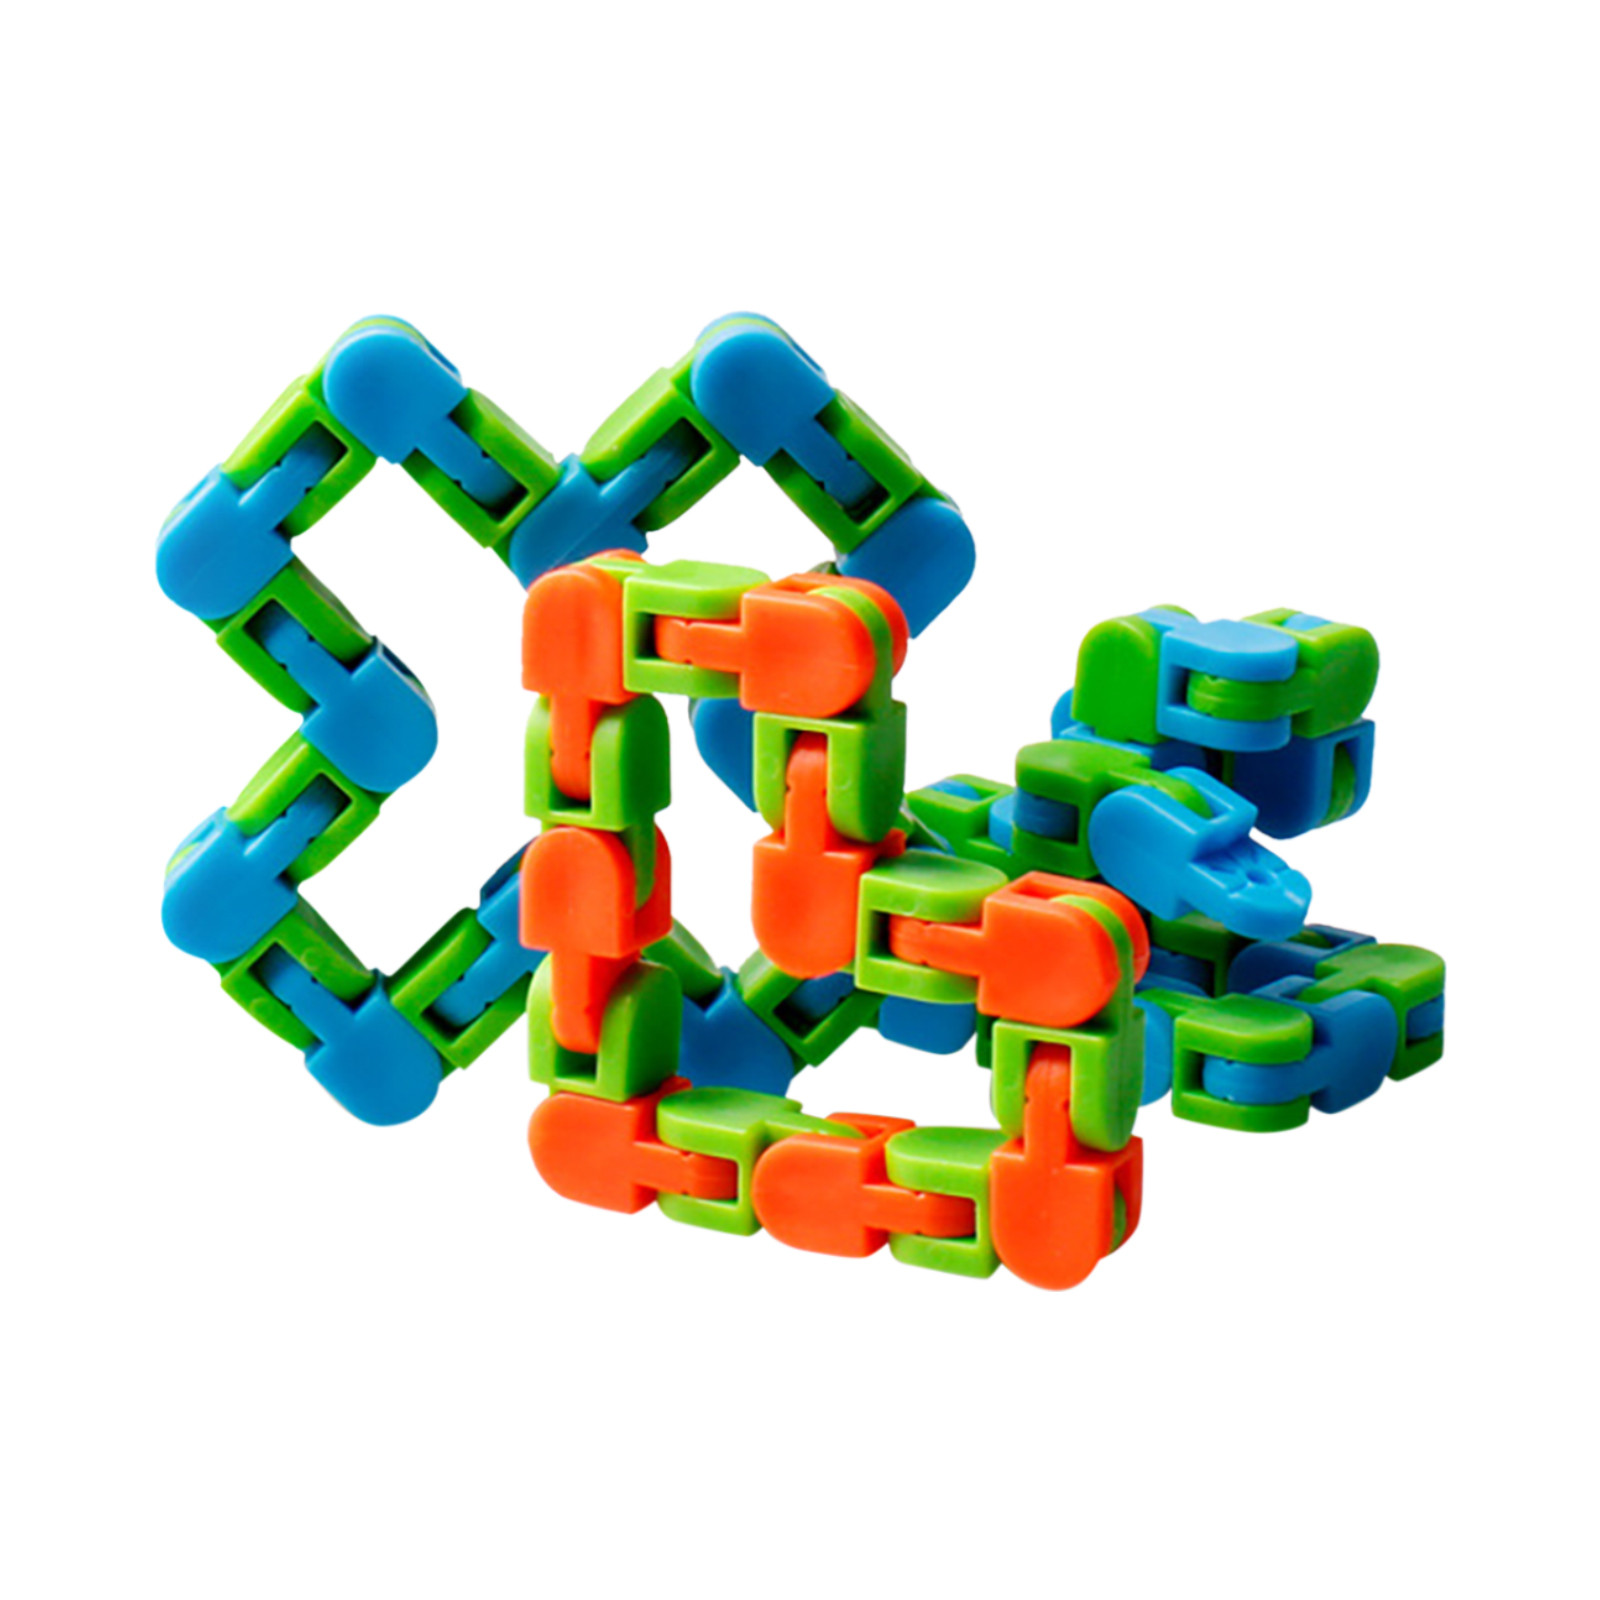 Toys Puzzle Tracks Snap Stress Shape Click Wacky Sensory Colorful Kids And Relief-Rotate img3